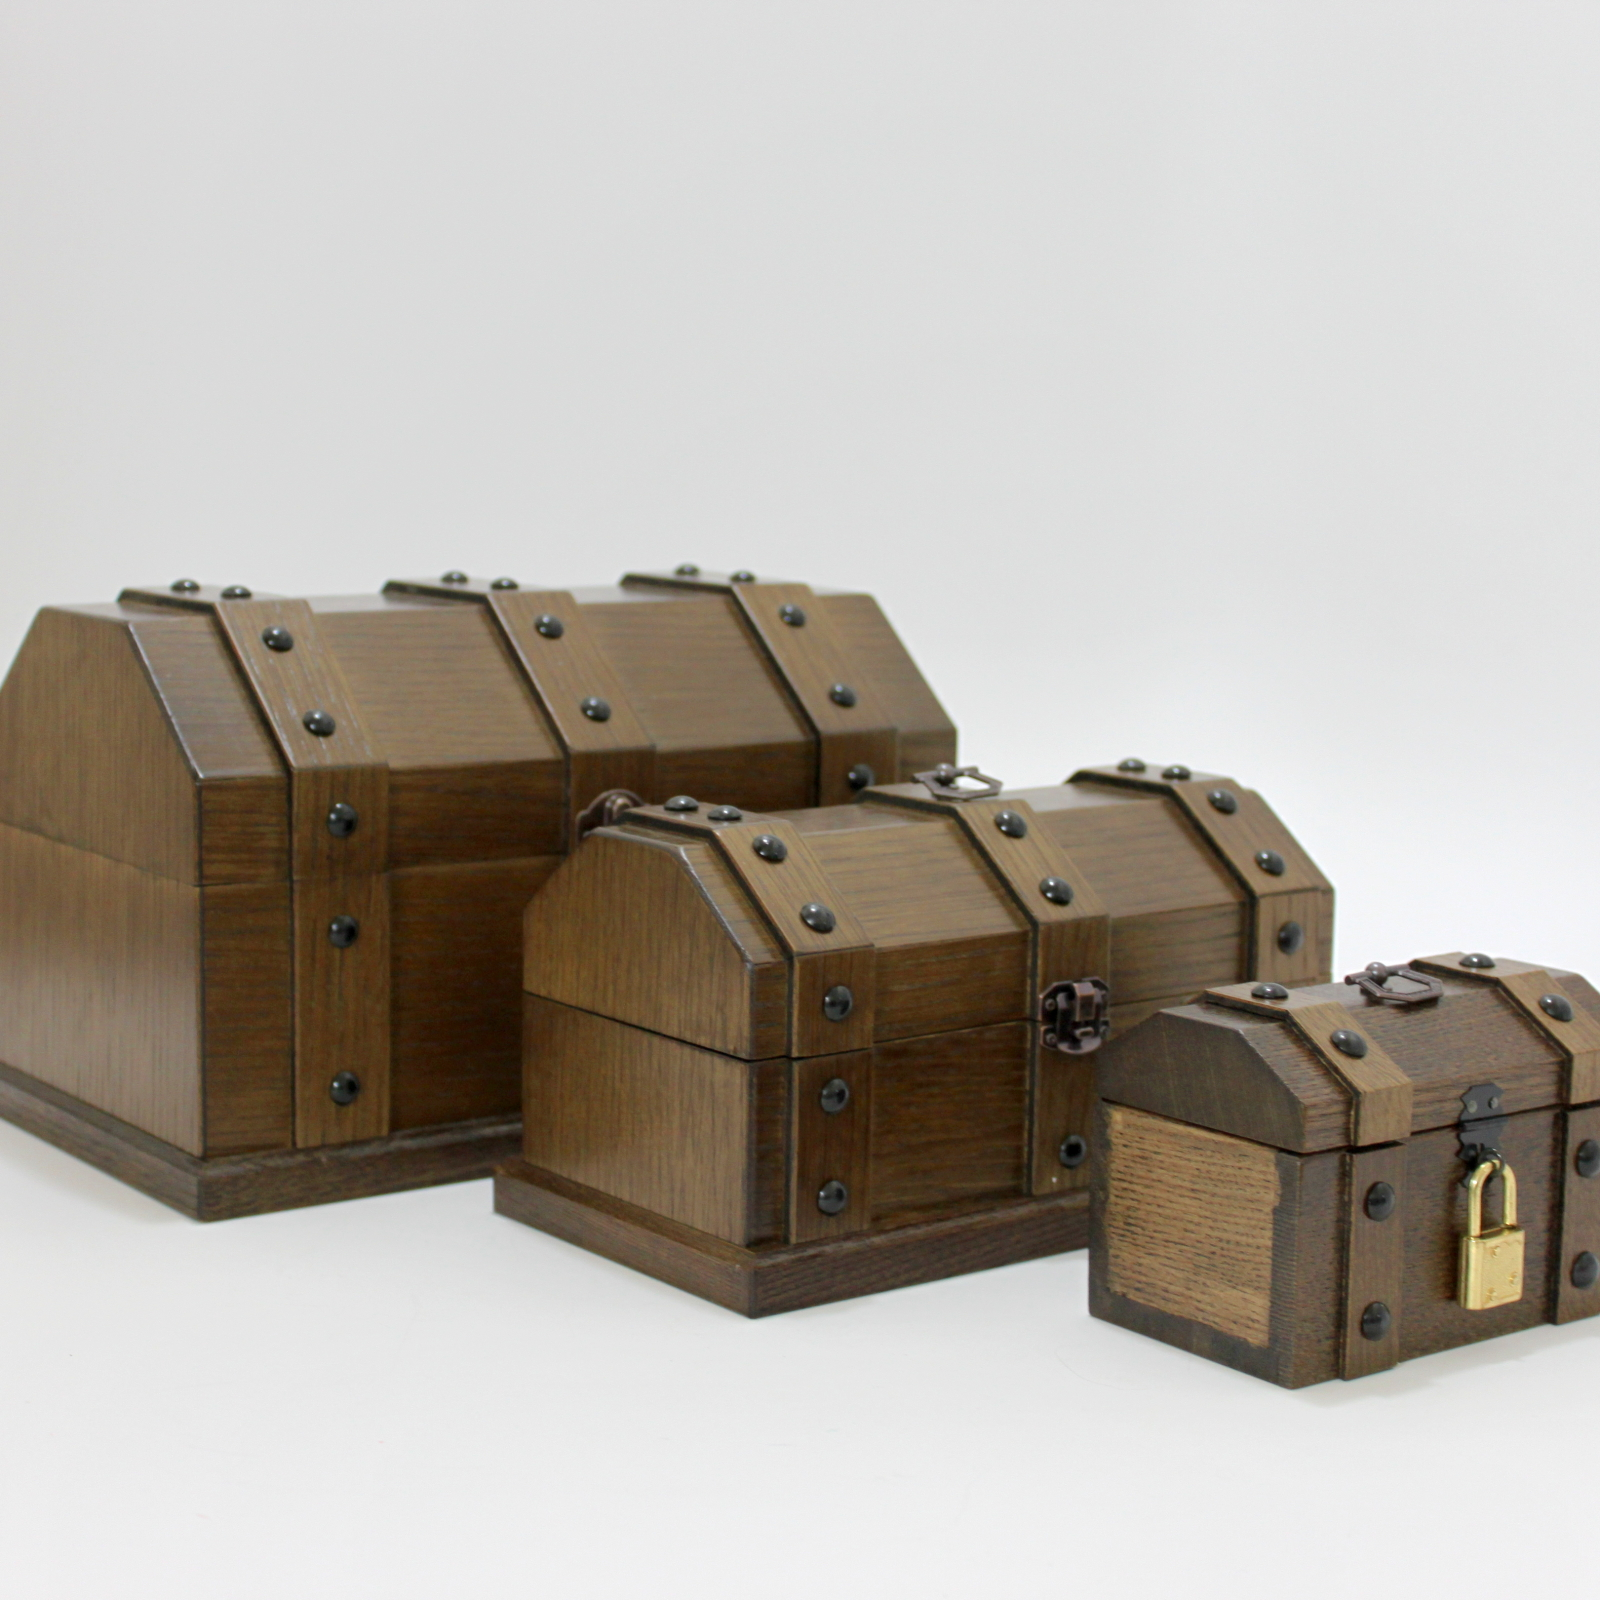 Pirate's Nest of Boxes by Mikame Craft